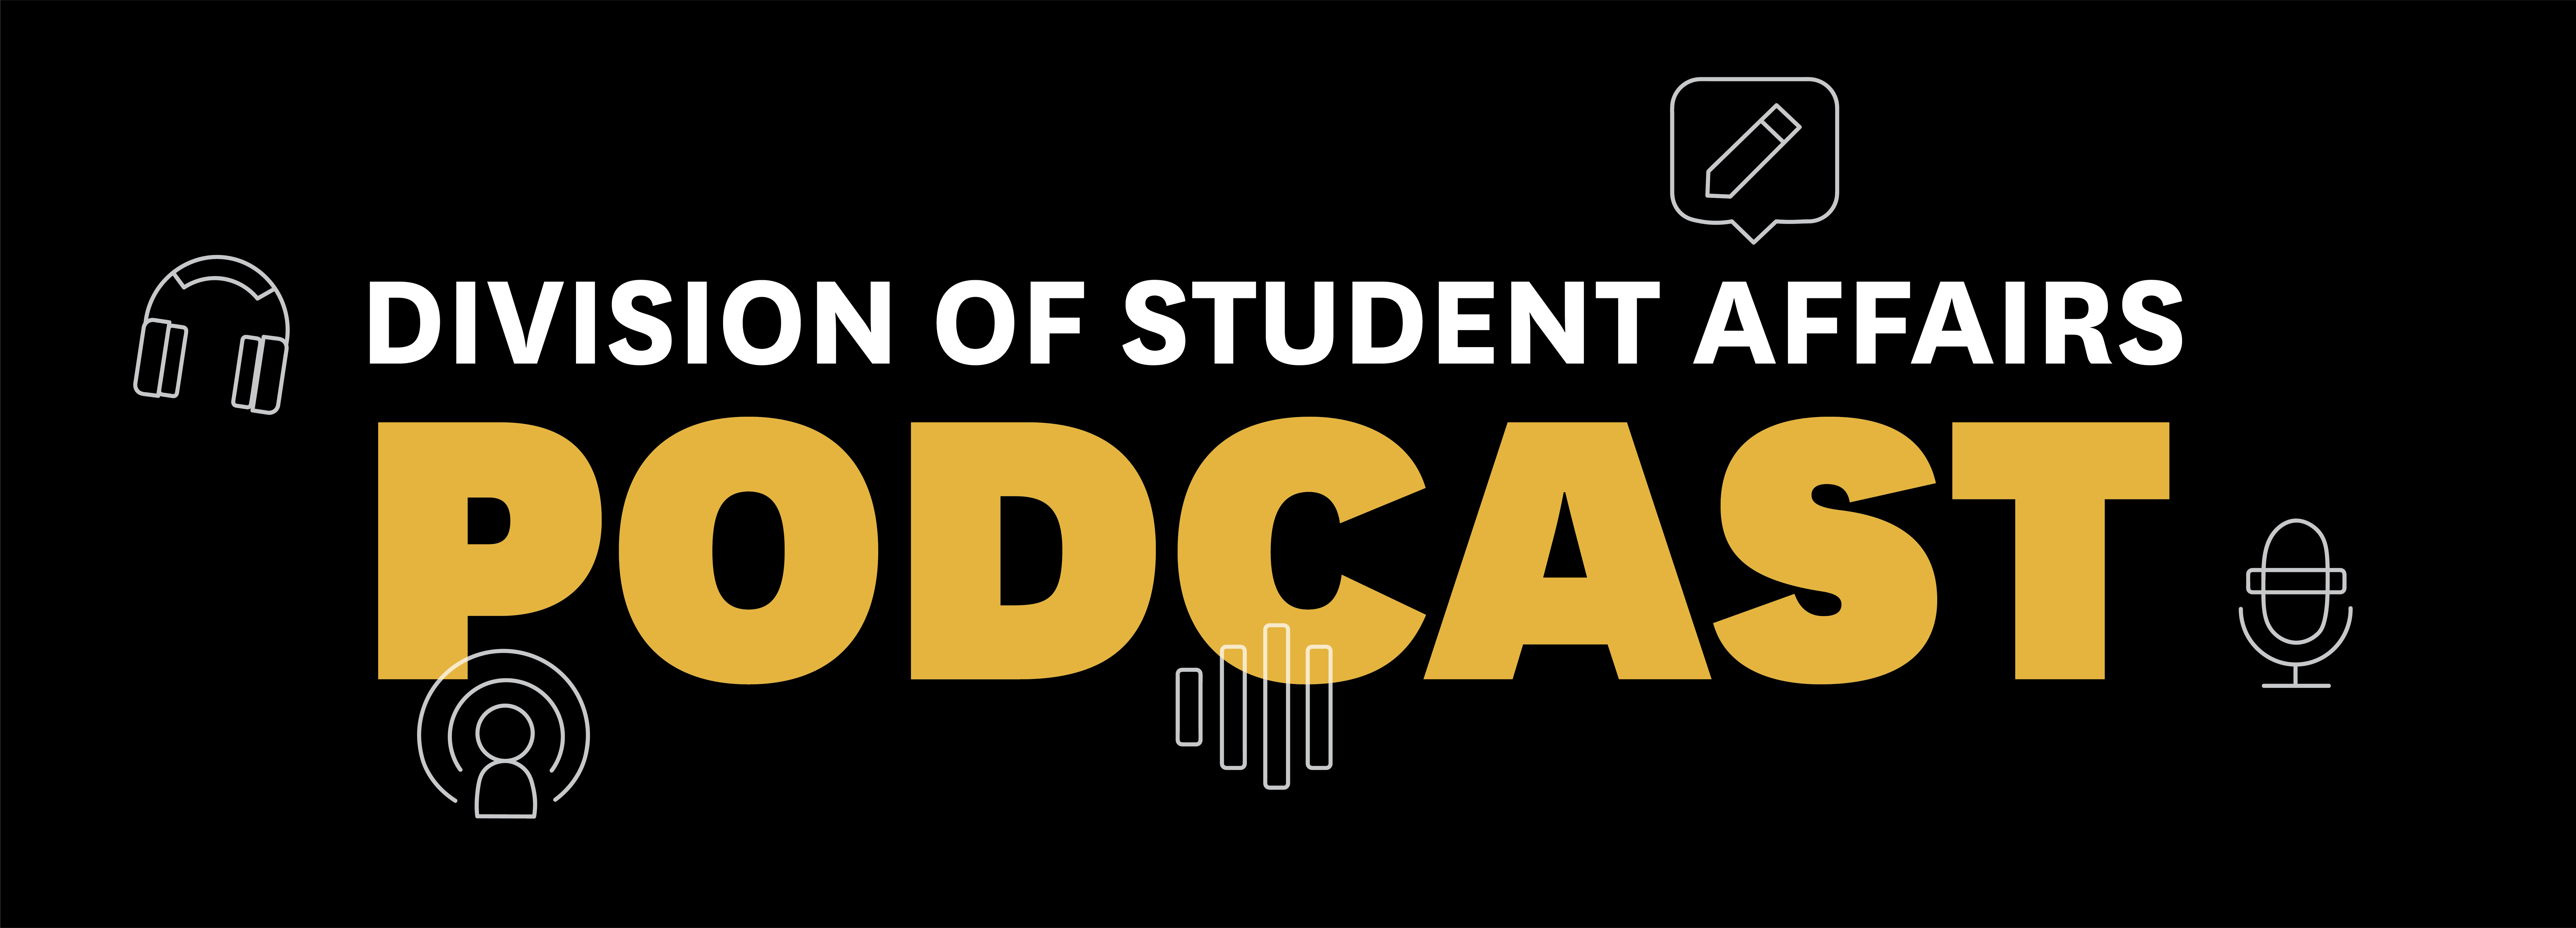 Division of Student Affairs Podcast